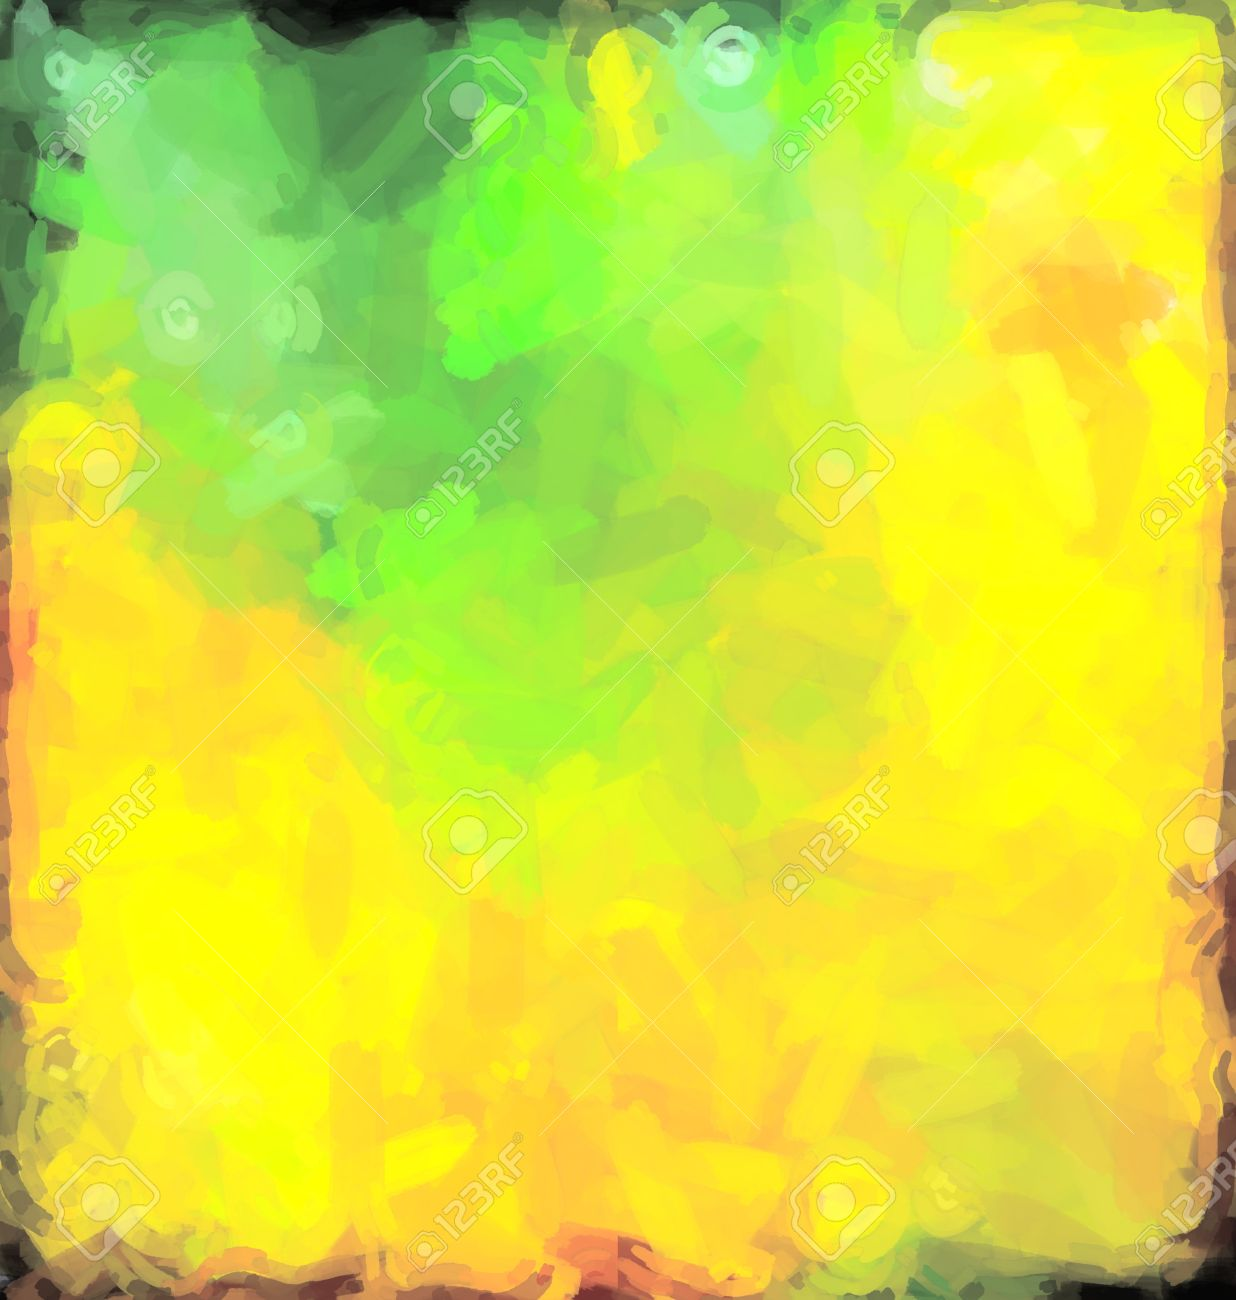 Green Yellow Abstract Watercolor Background Paper Design Of Bright ...